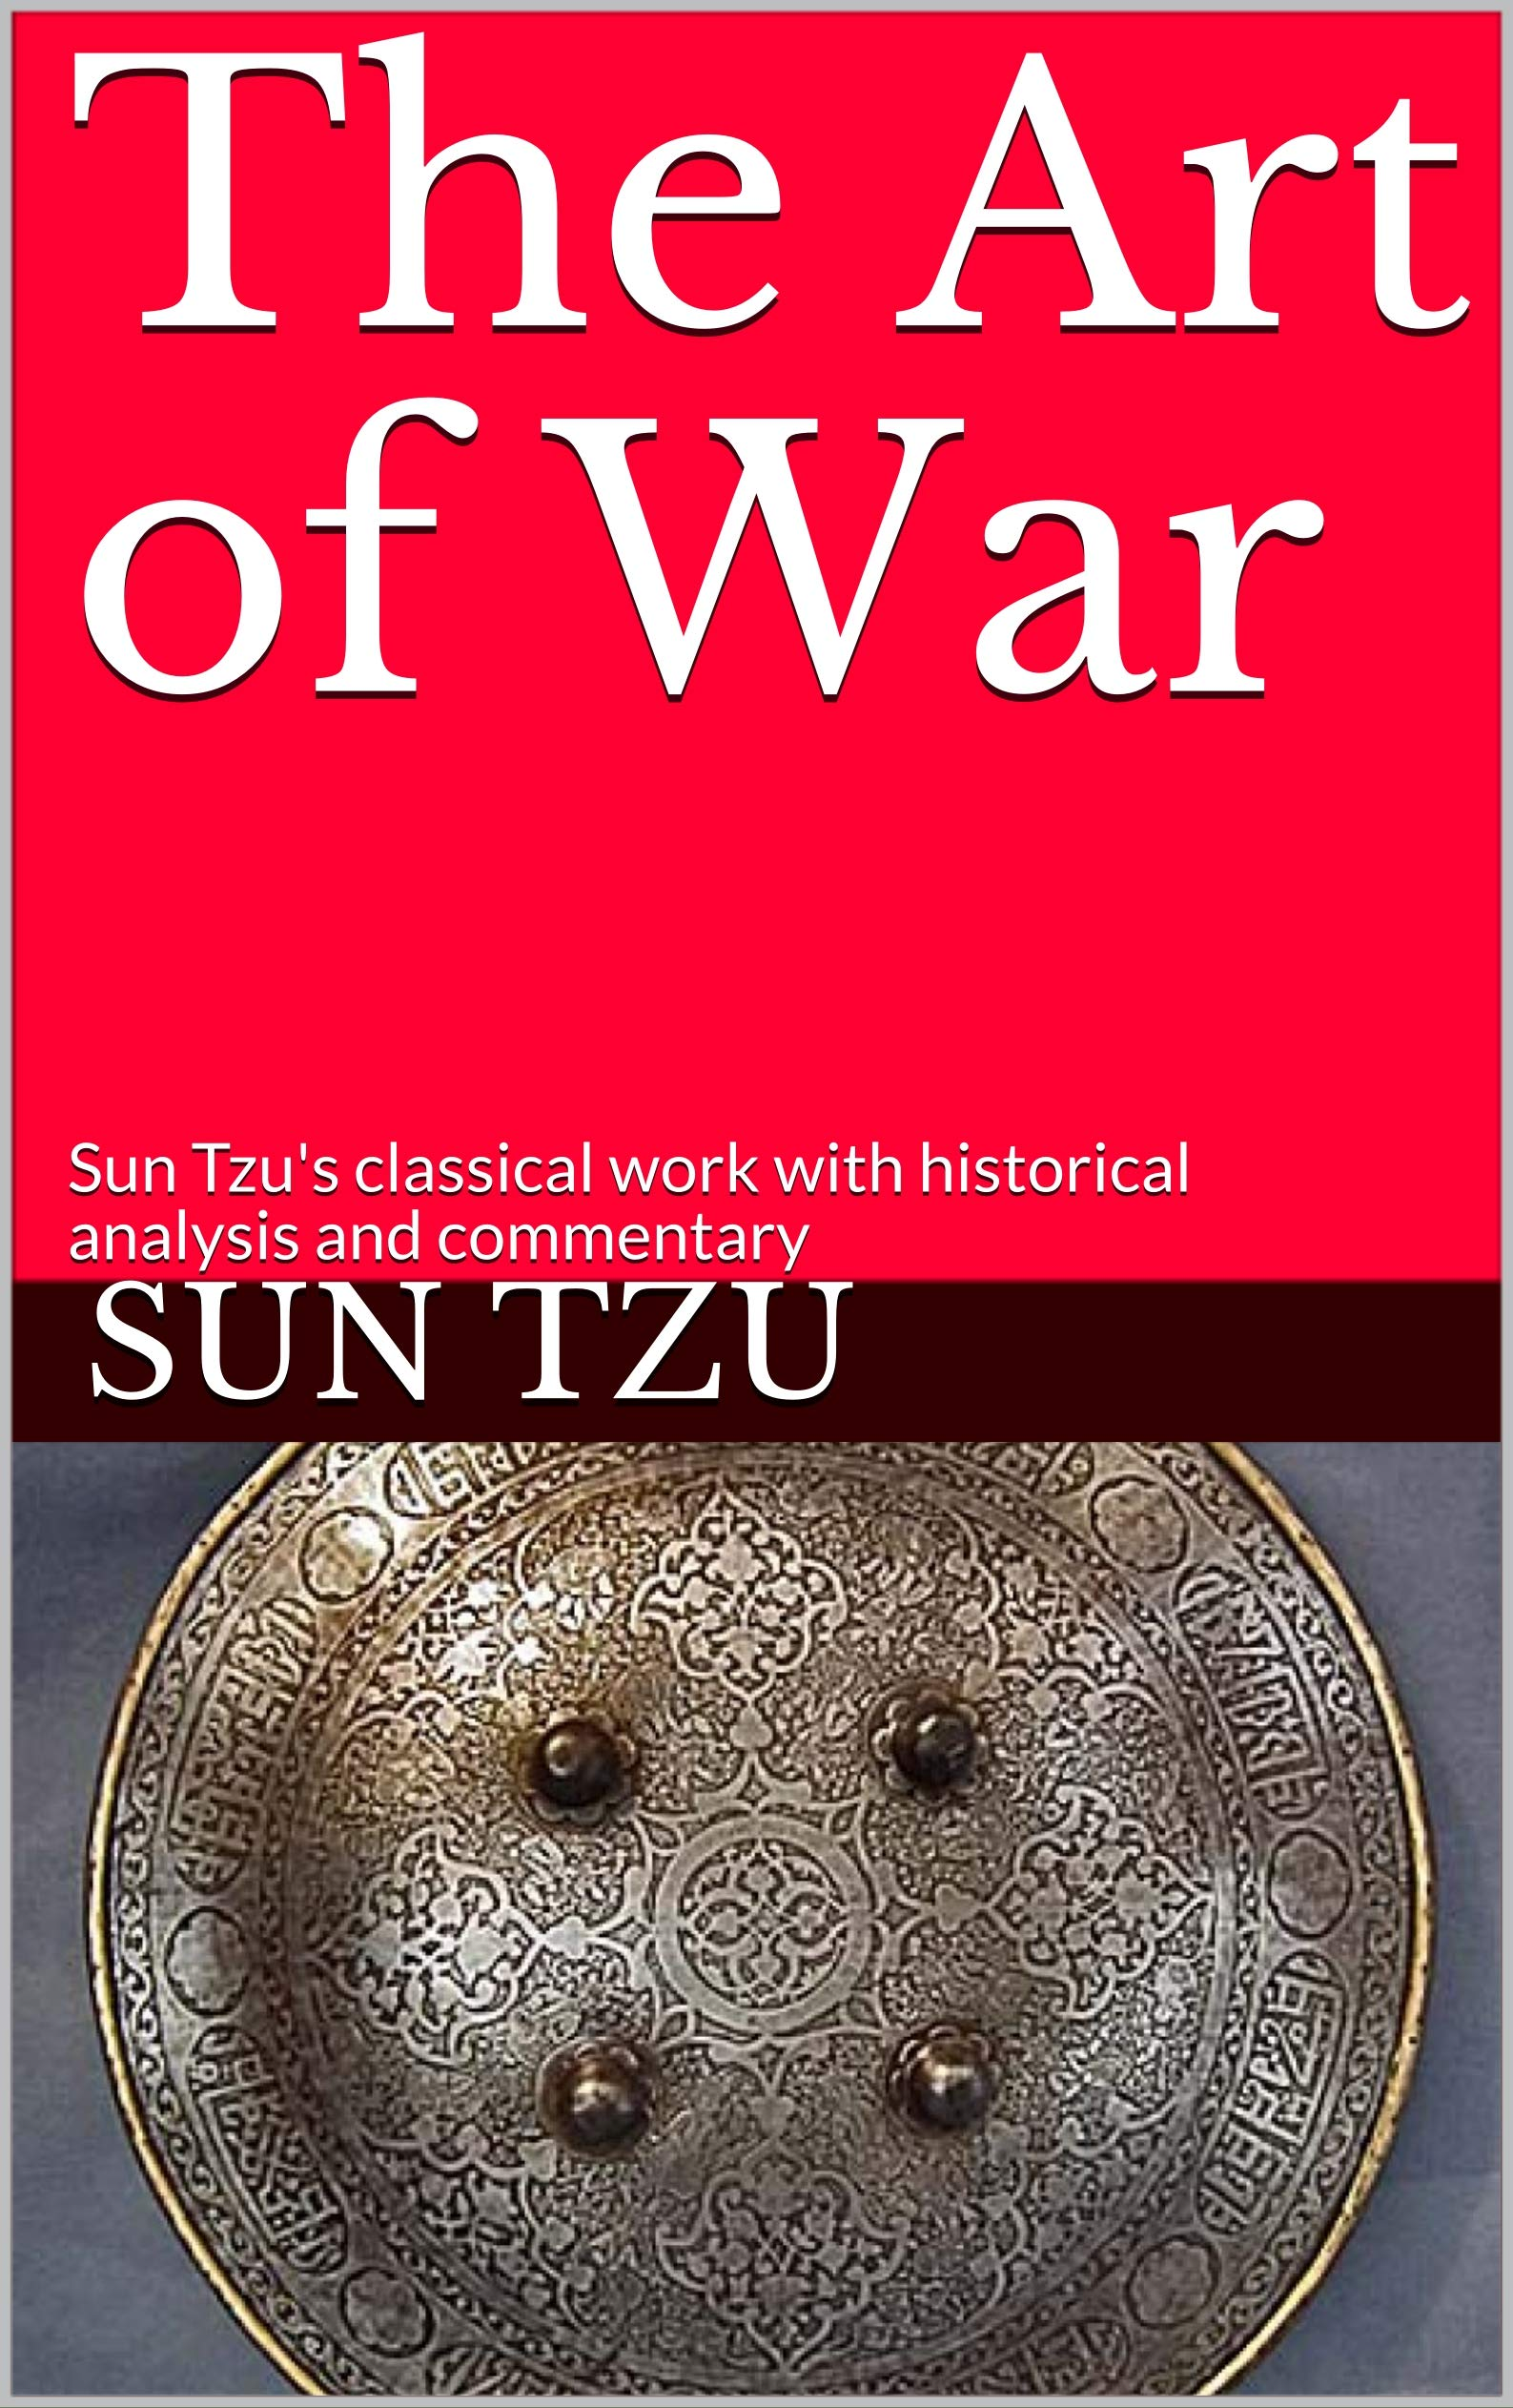 The Art of War : Sun Tzu's classical work with historical analysis and commentary